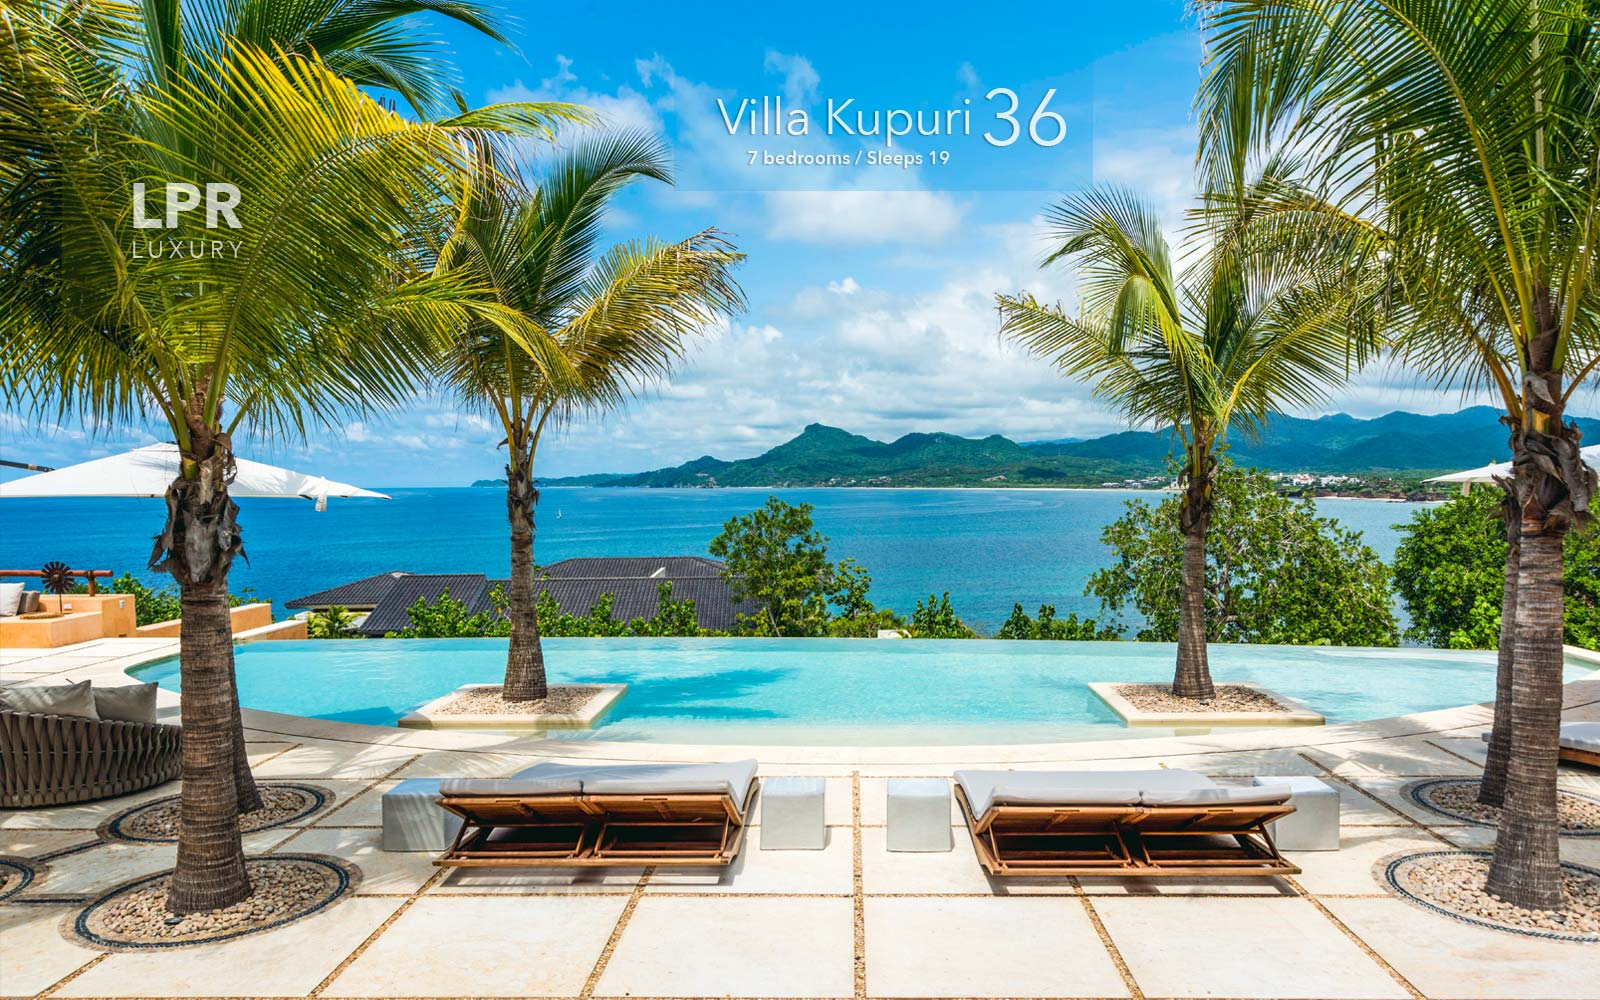 Villa Kupuri 36 - Luxury Punta Mita vacation rentals - Puerto to Vallarta / Four Seasons / St. Regis - Mexico